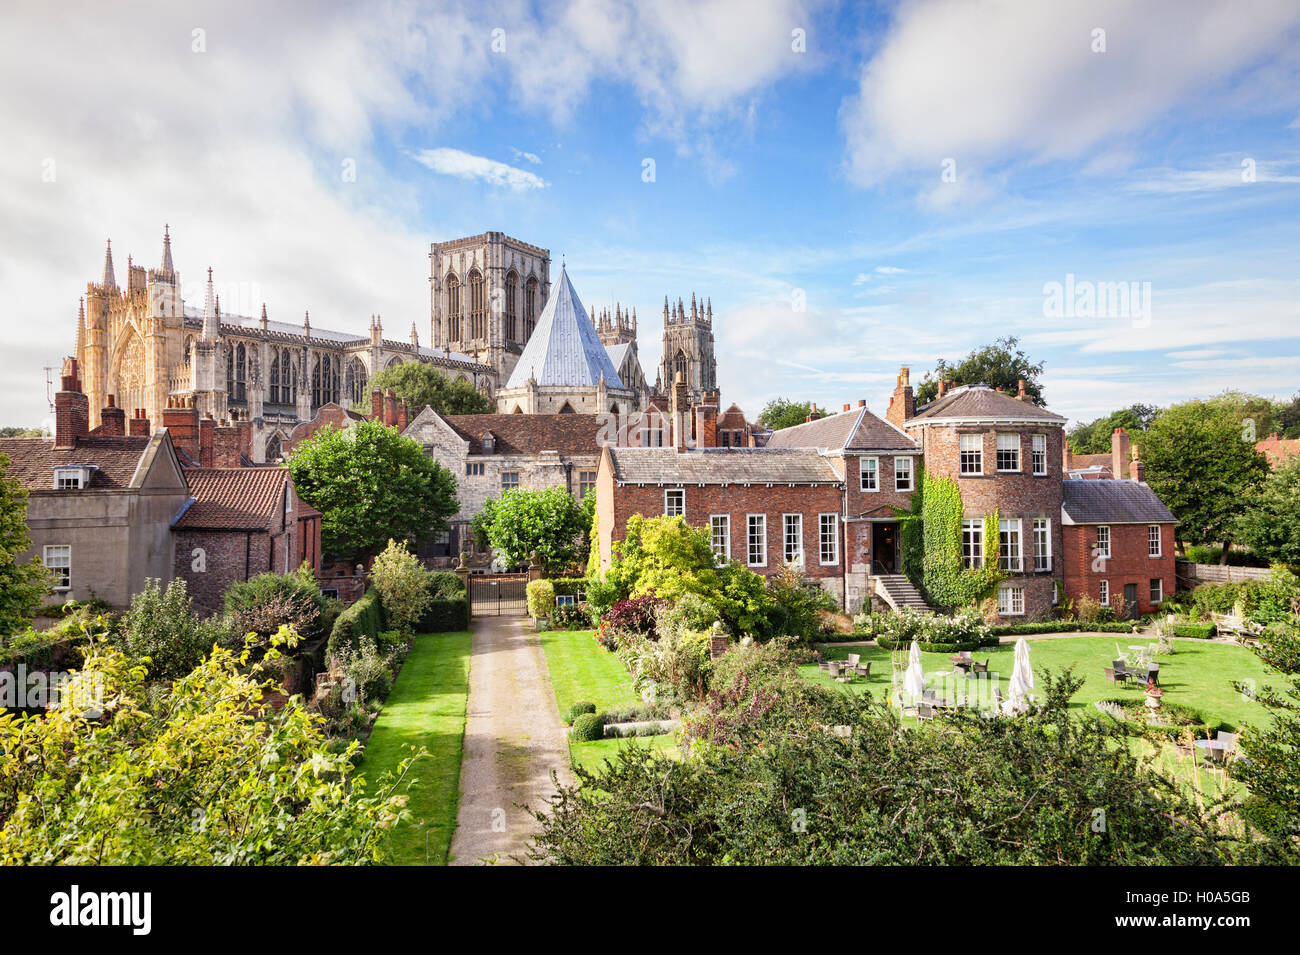 York Minster and Gray's Court Hotel, from the city walls, York, North Yorkshire, England, UK - Stock Image